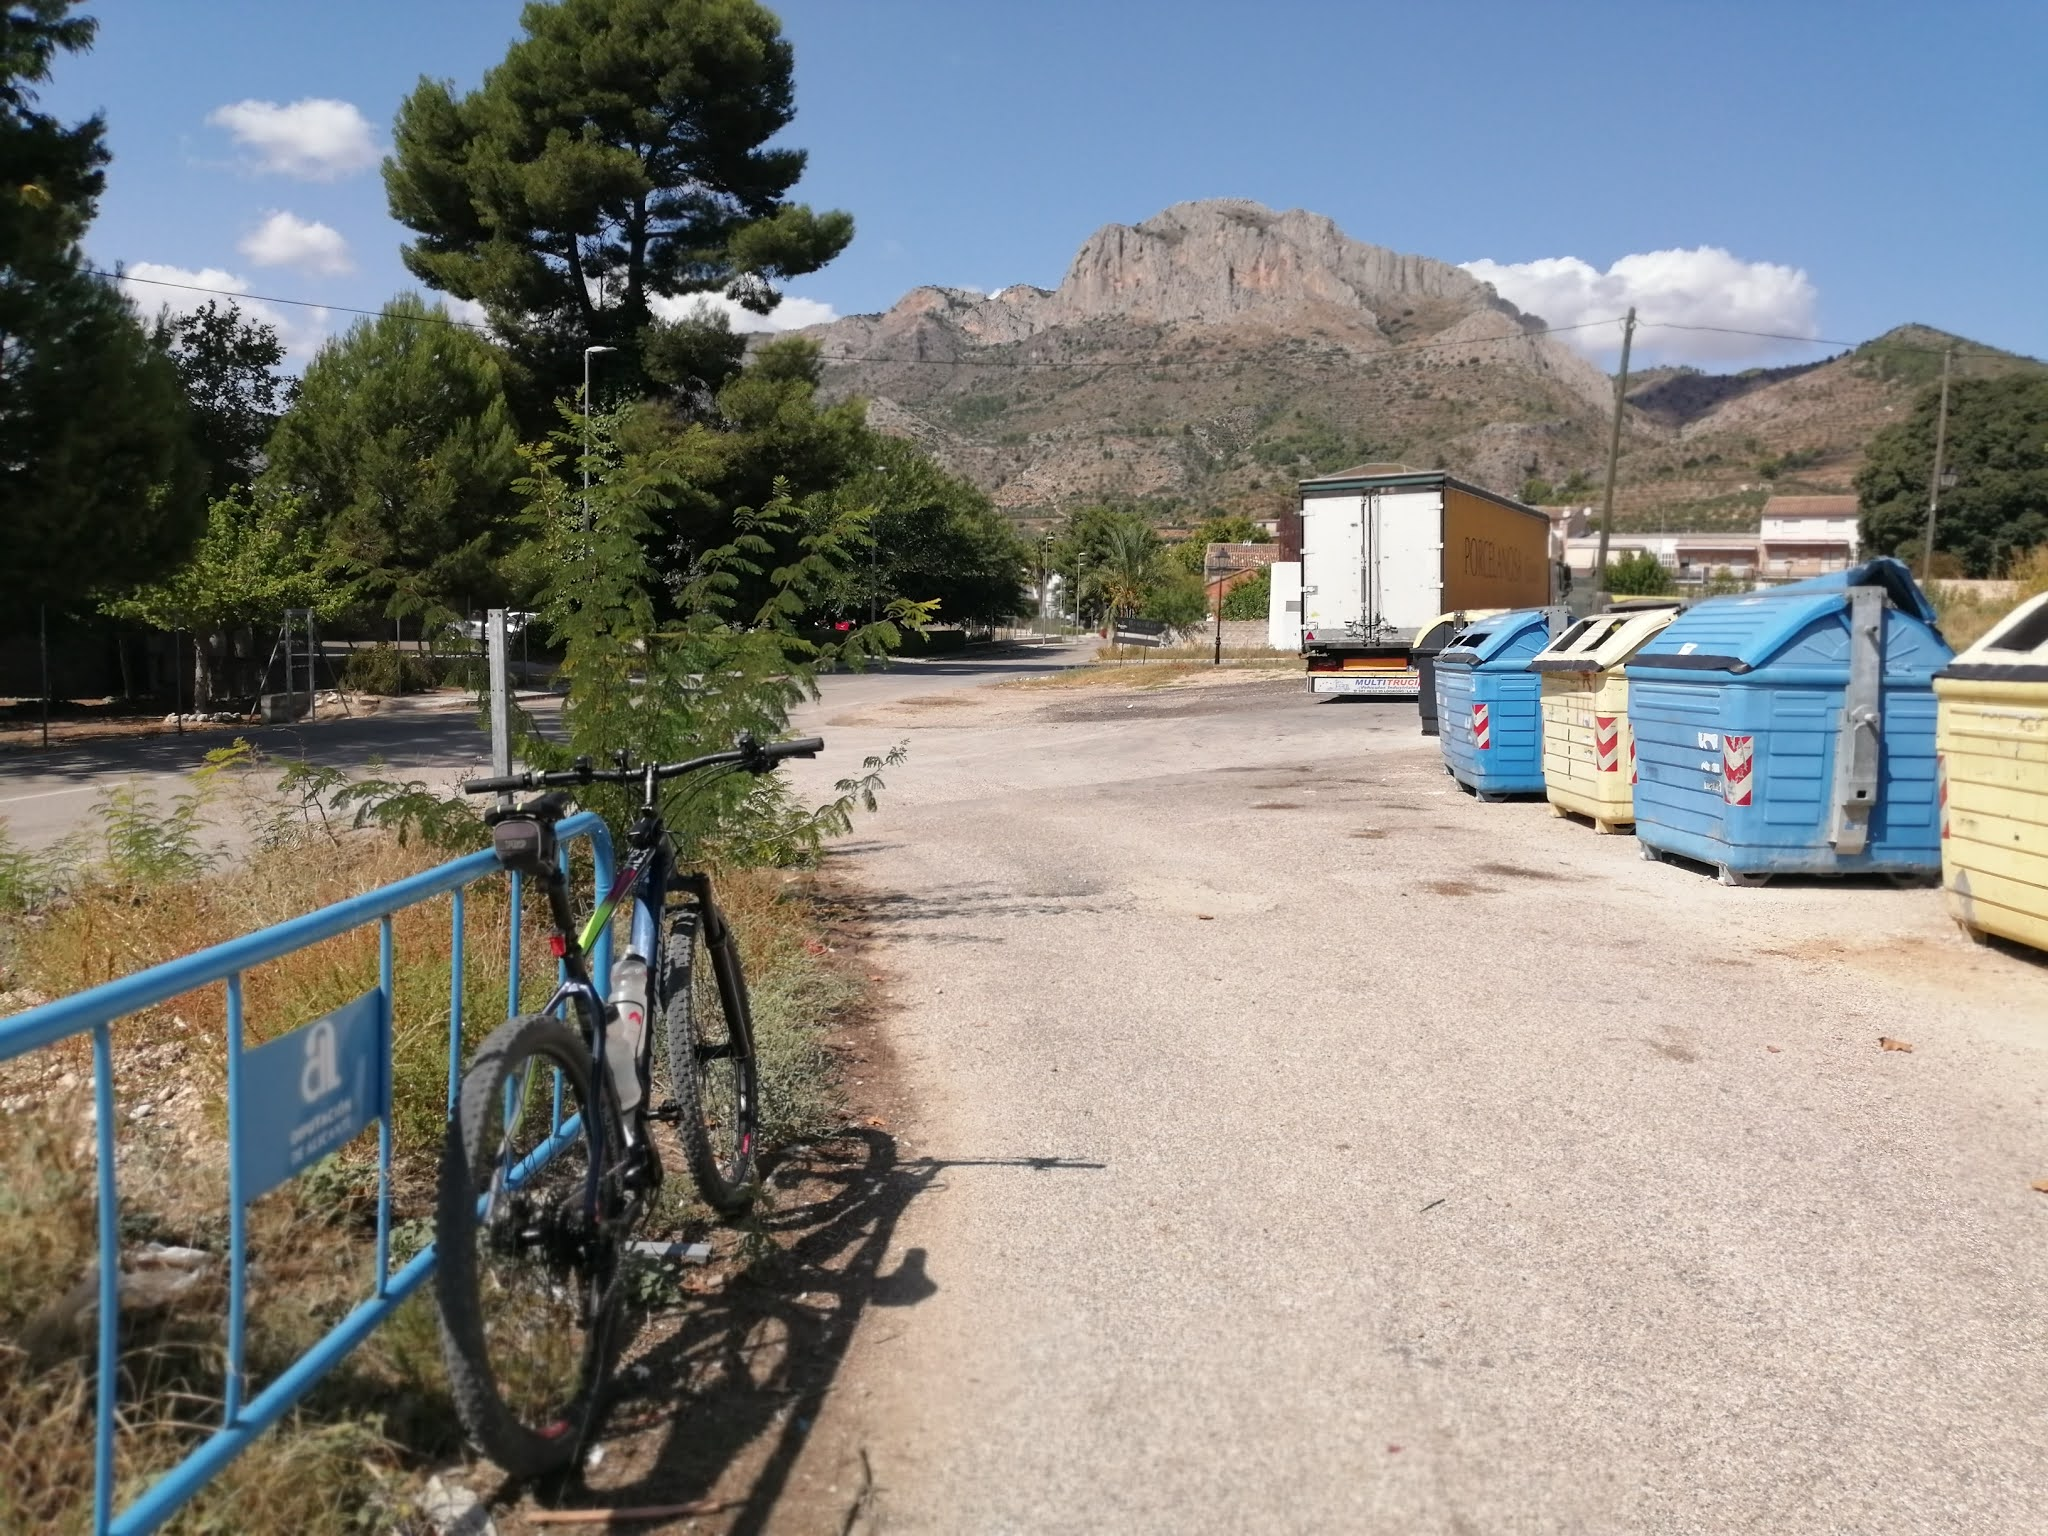 Point where the Serpis Greenway emerges in Beniarrés